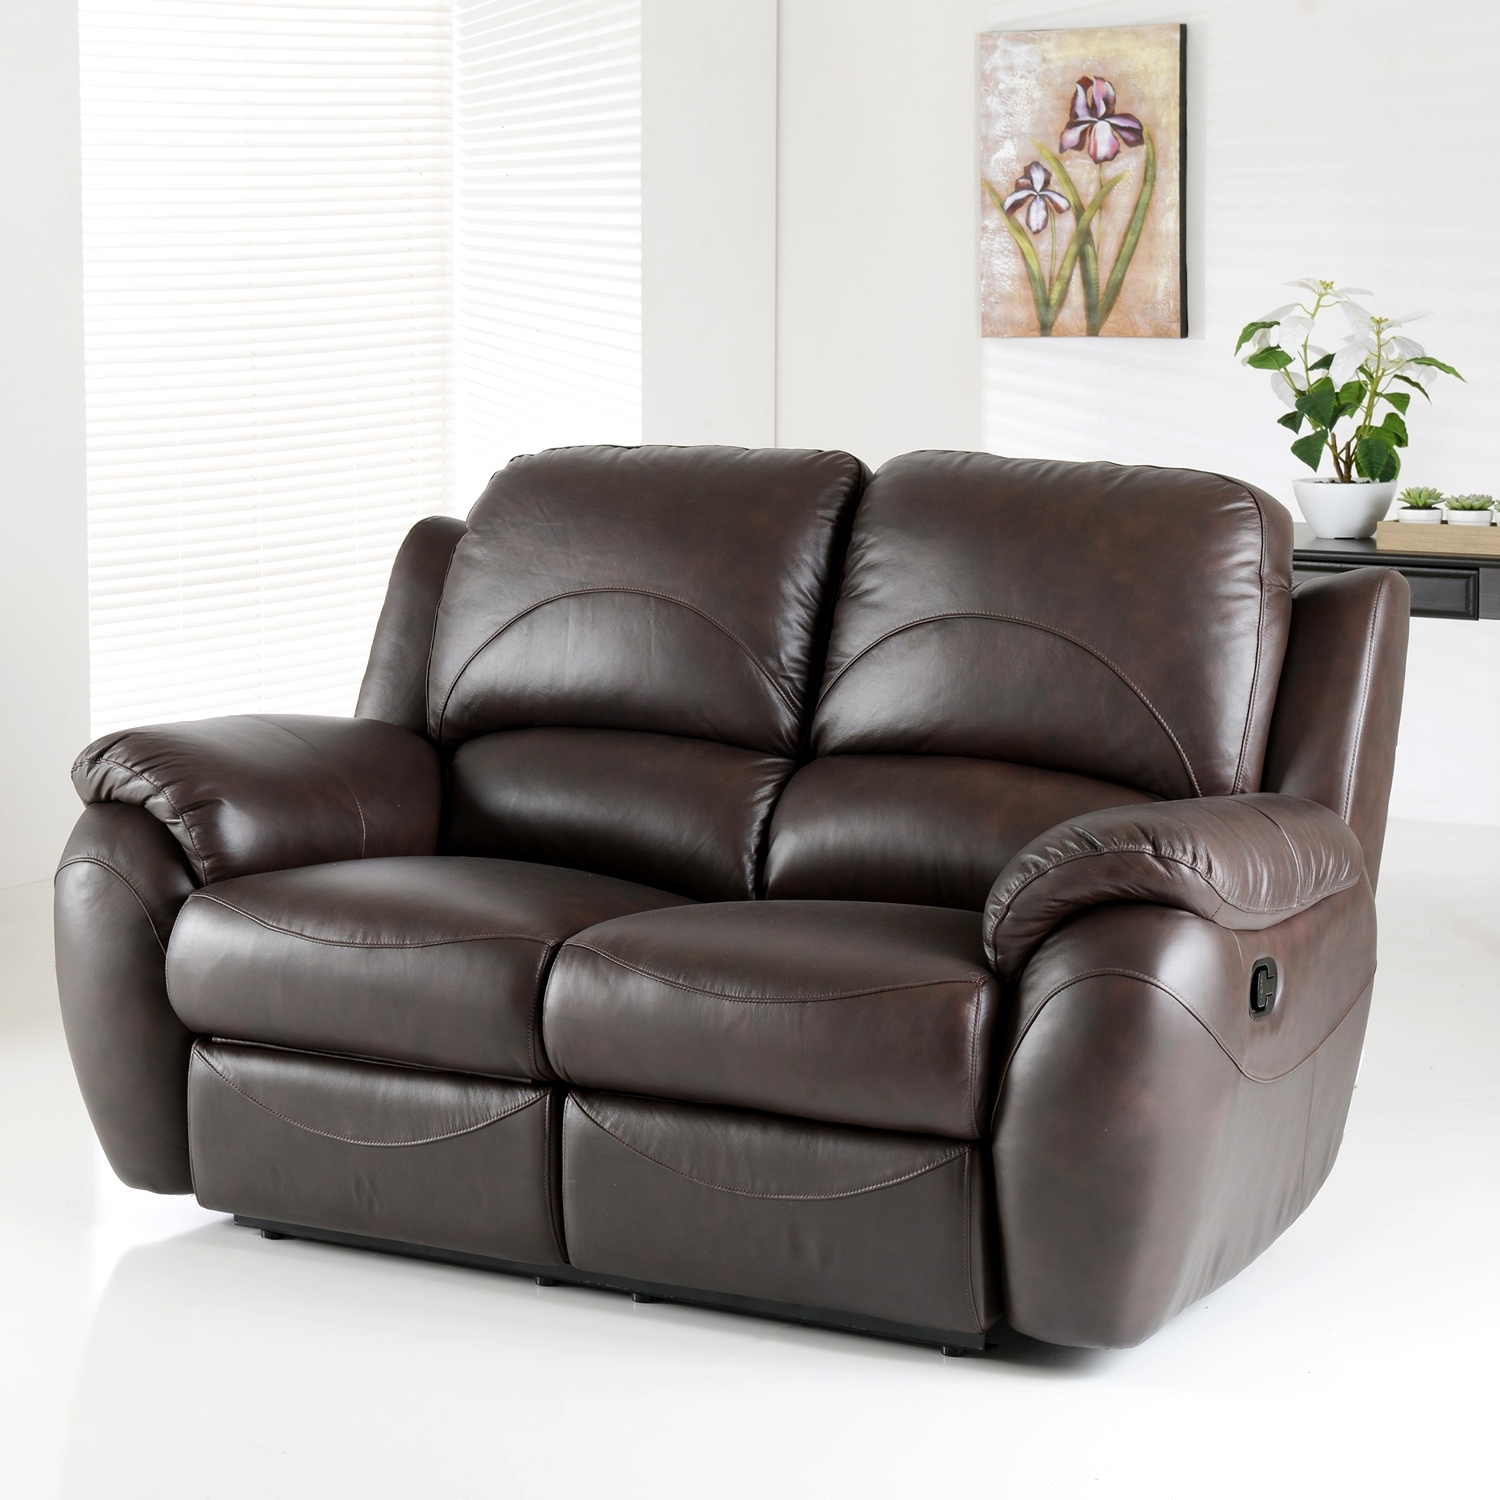 Cheap Reclining Loveseat With Console Used Leather Recliner Chair Throughout Preferred 2 Seat Recliner Sofas (View 6 of 15)